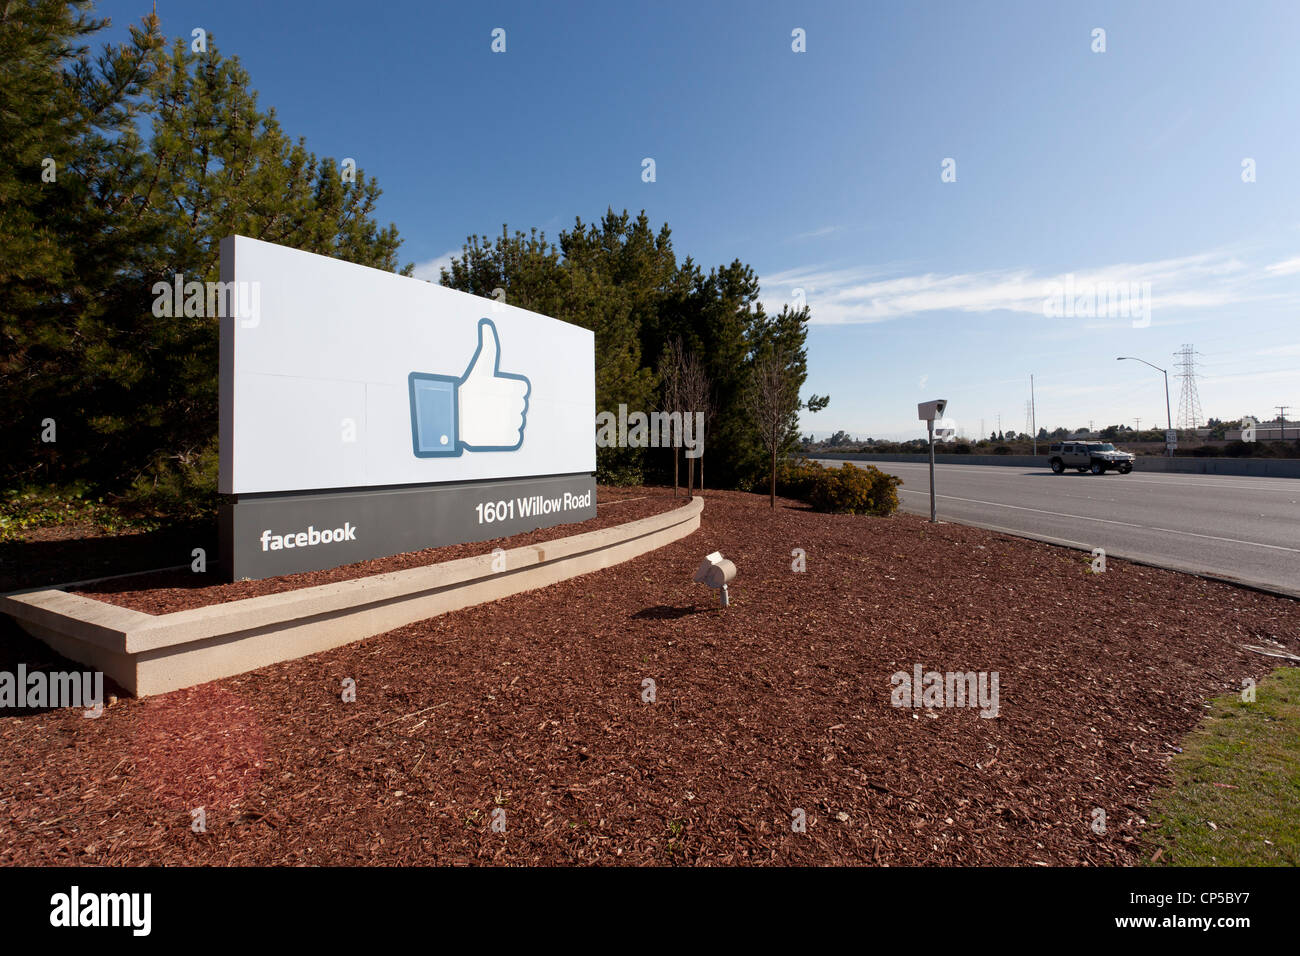 Facebook Sign, 1601 Willow Road, Menlo Park, CA 94025 Stock Photo